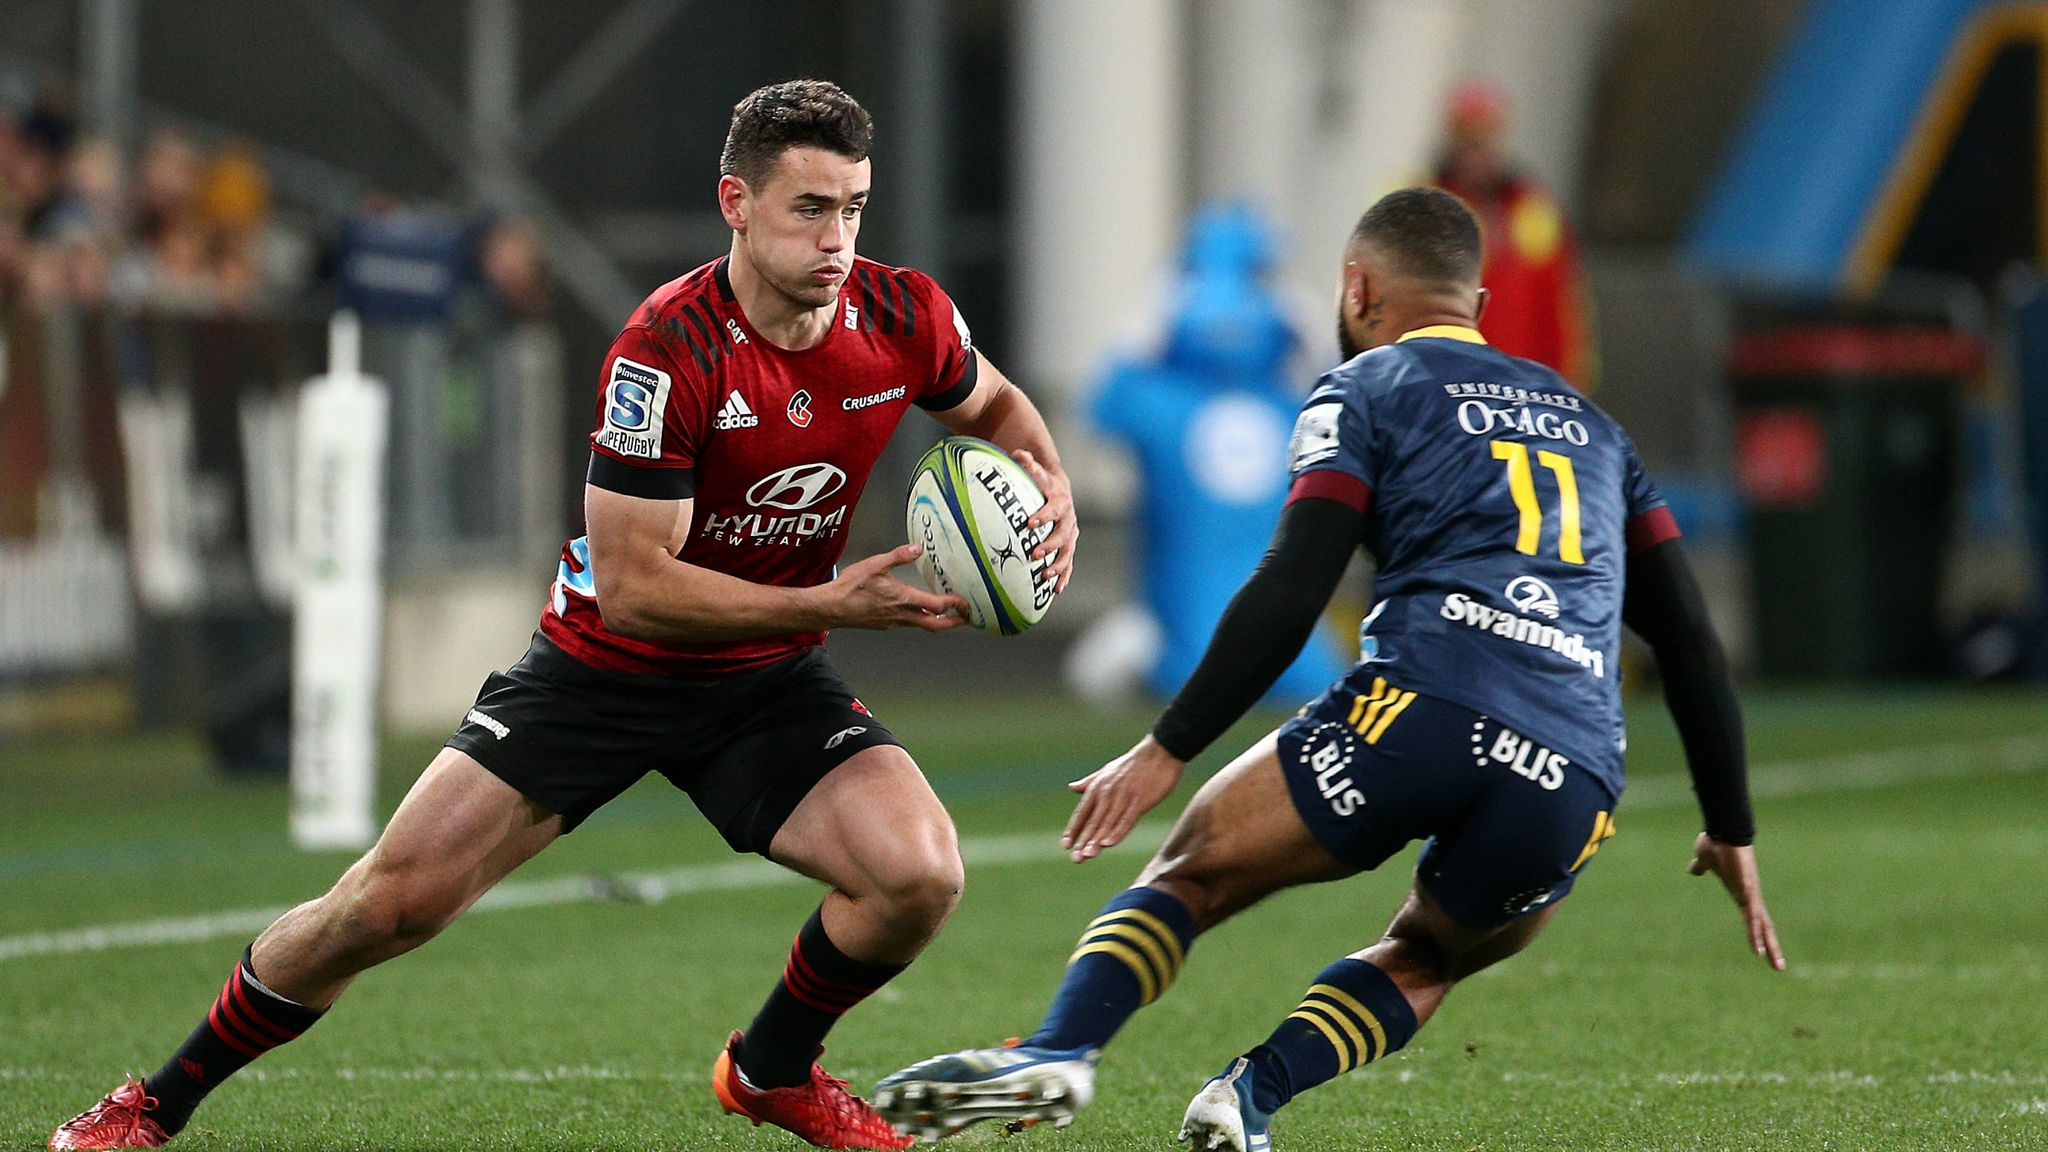 Highlanders 20-40 Crusaders: Will Jordan shines in Crusaders win ...